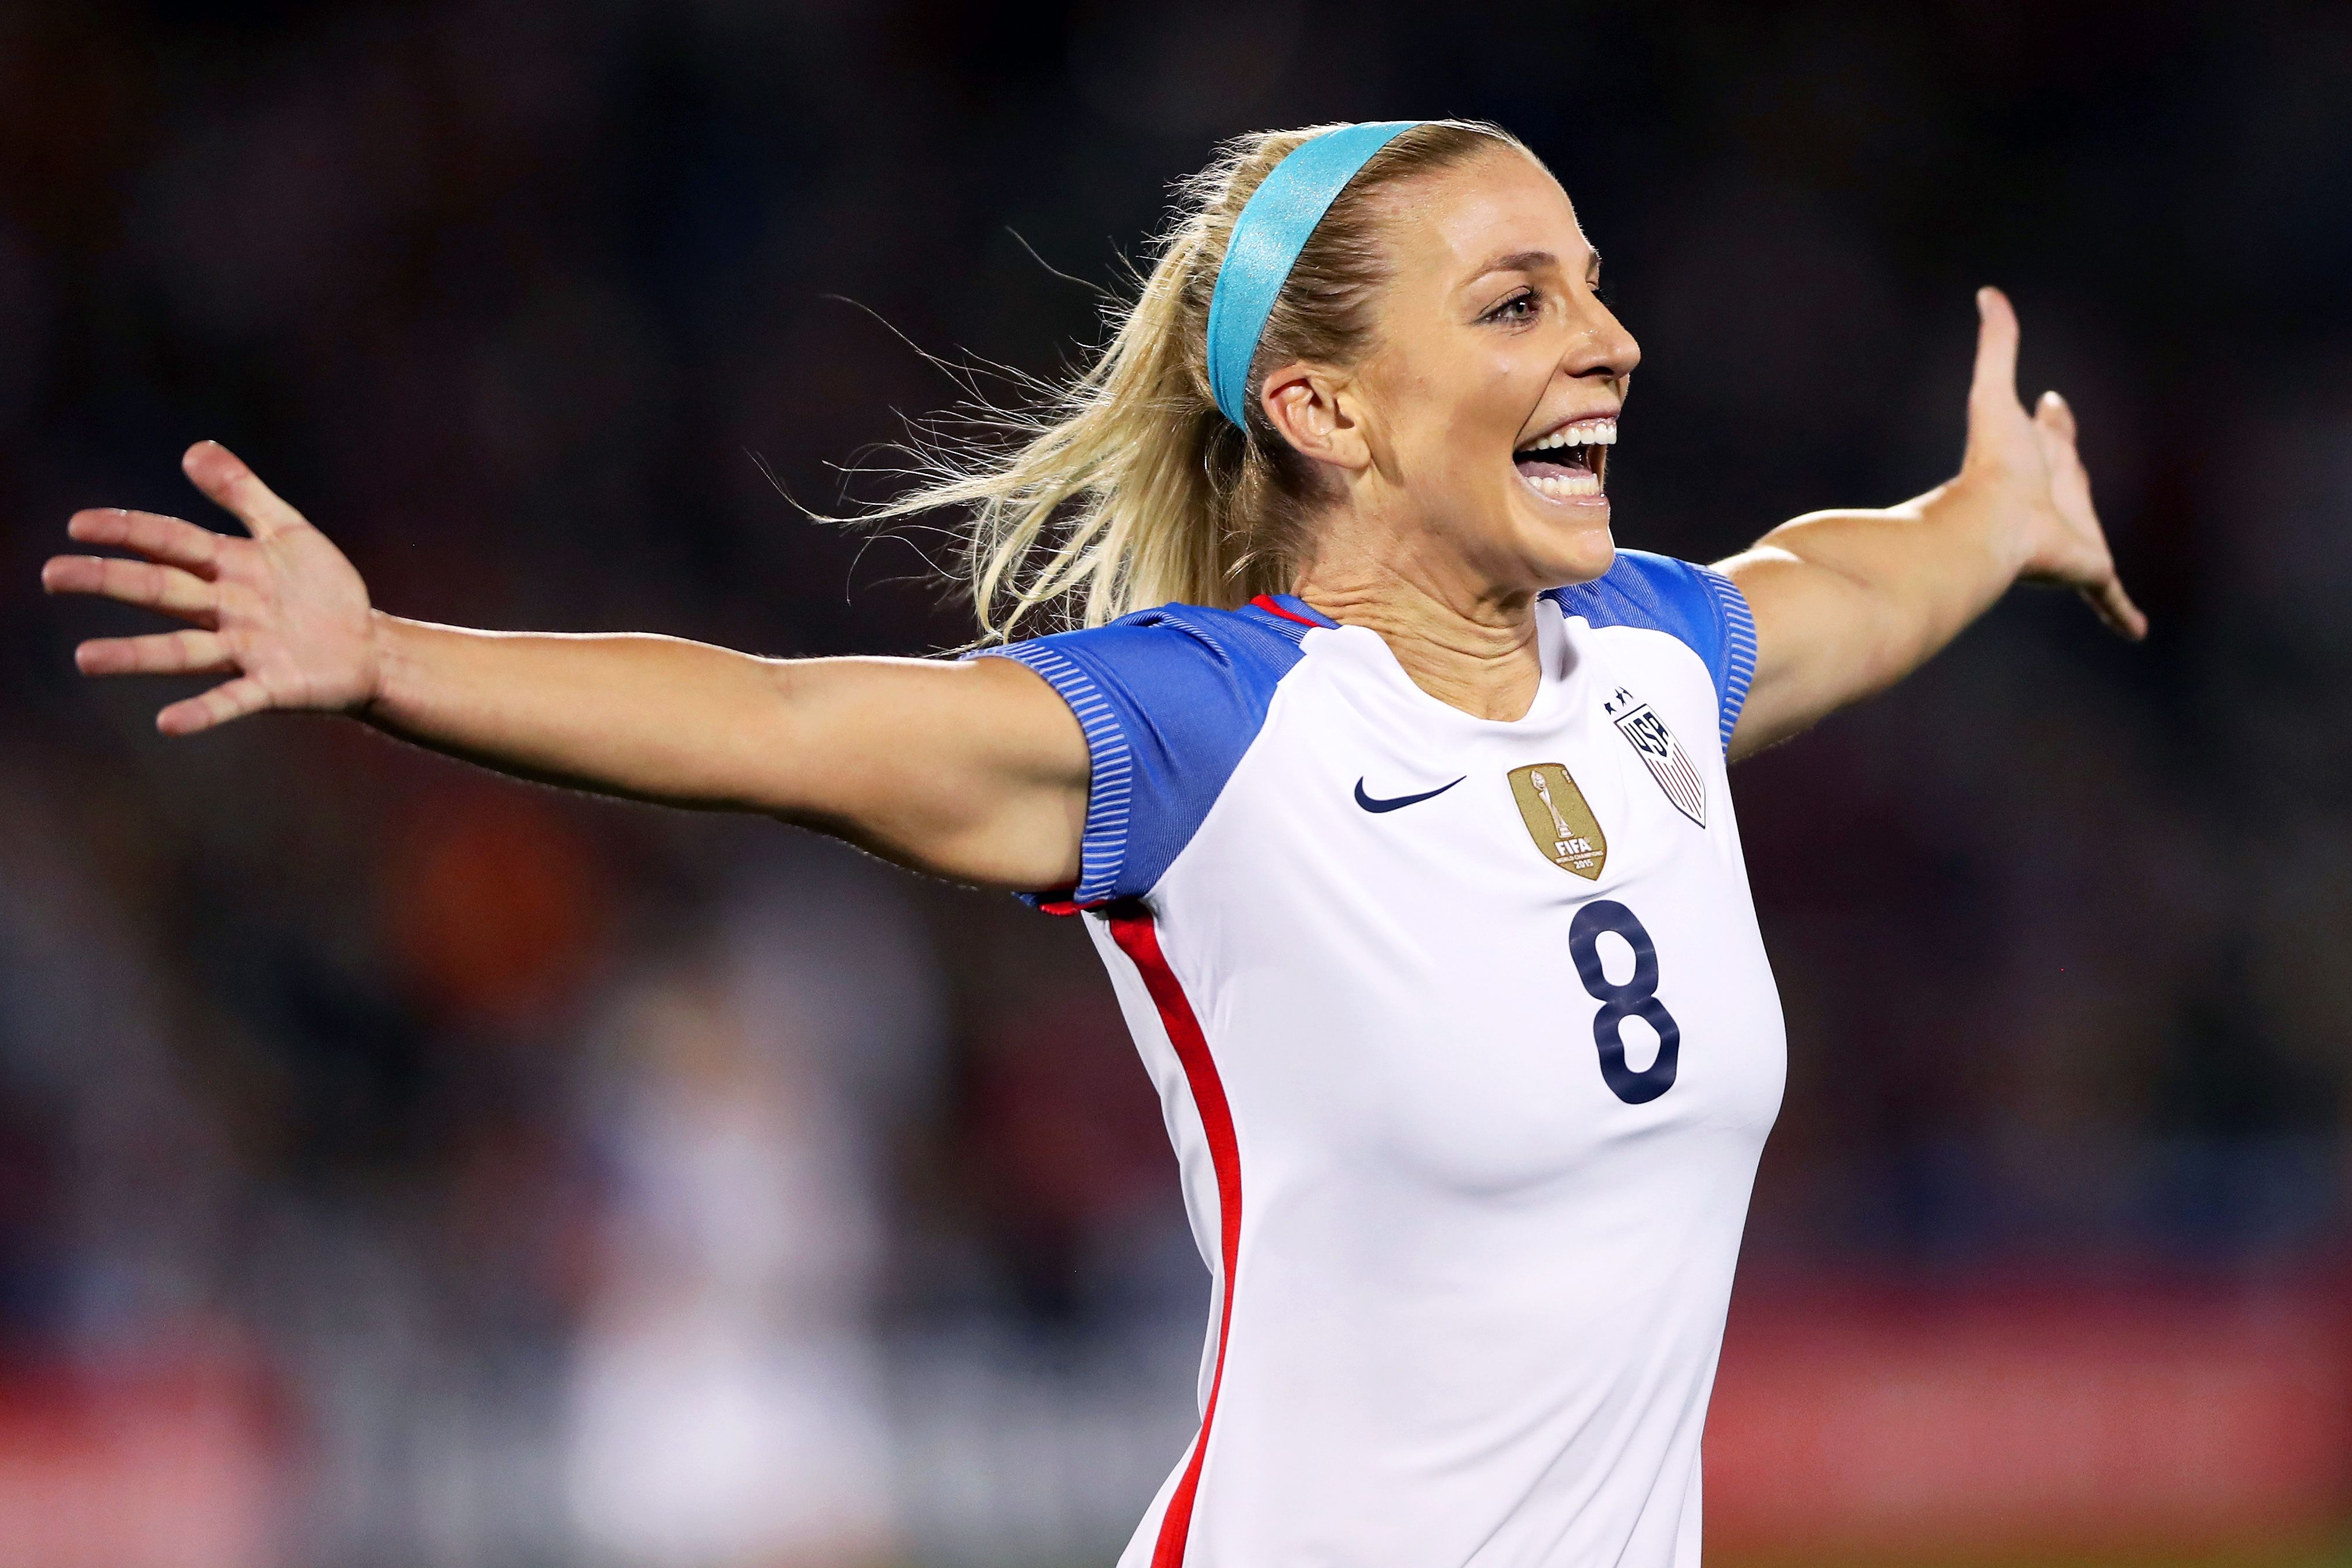 Olympian and Pro Soccer Player Julie Ertz Shares Her Healthy Eating Tips and Go-To Beauty Routine